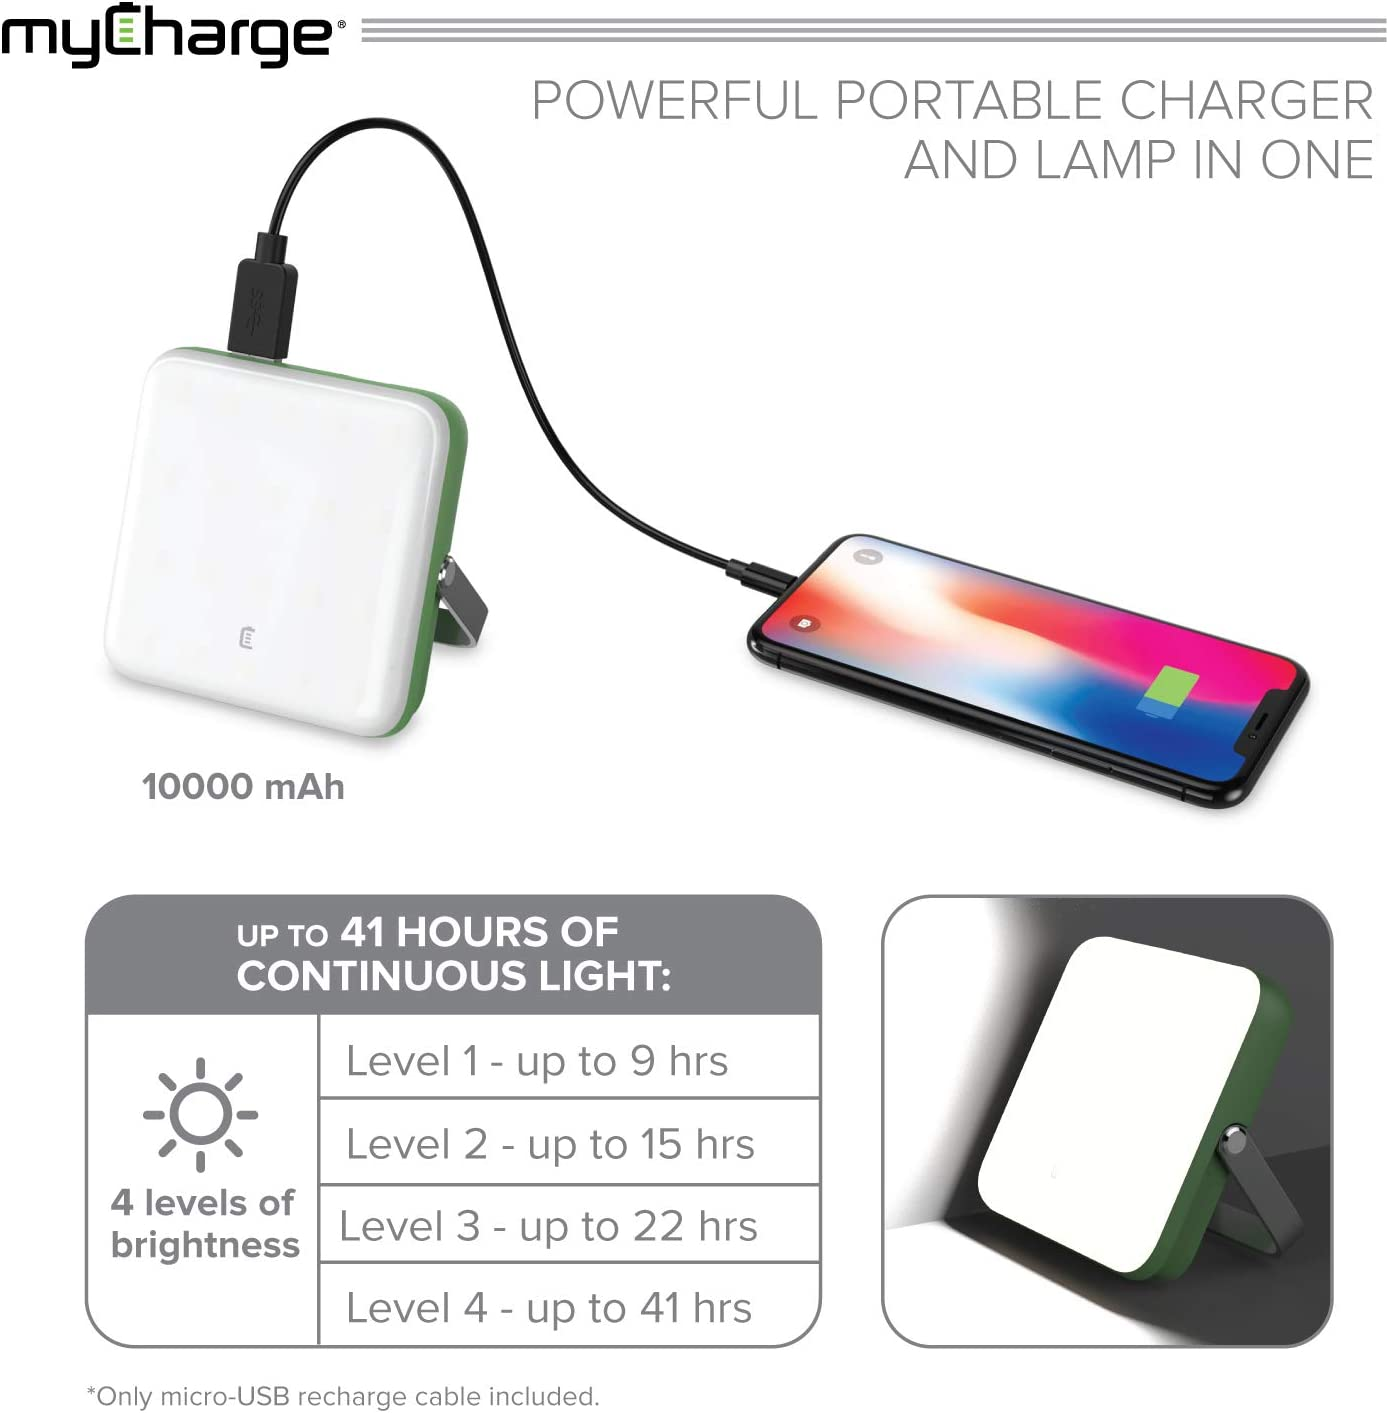 40 HR Lamp Runtime // 4 Light Settings myCharge Camping Lantern Power Bank 10,000 mAh Adventure Portable Charger Rechargeable LED Phone Charger Battery Pack 2 USB Ports // 2.4A Max